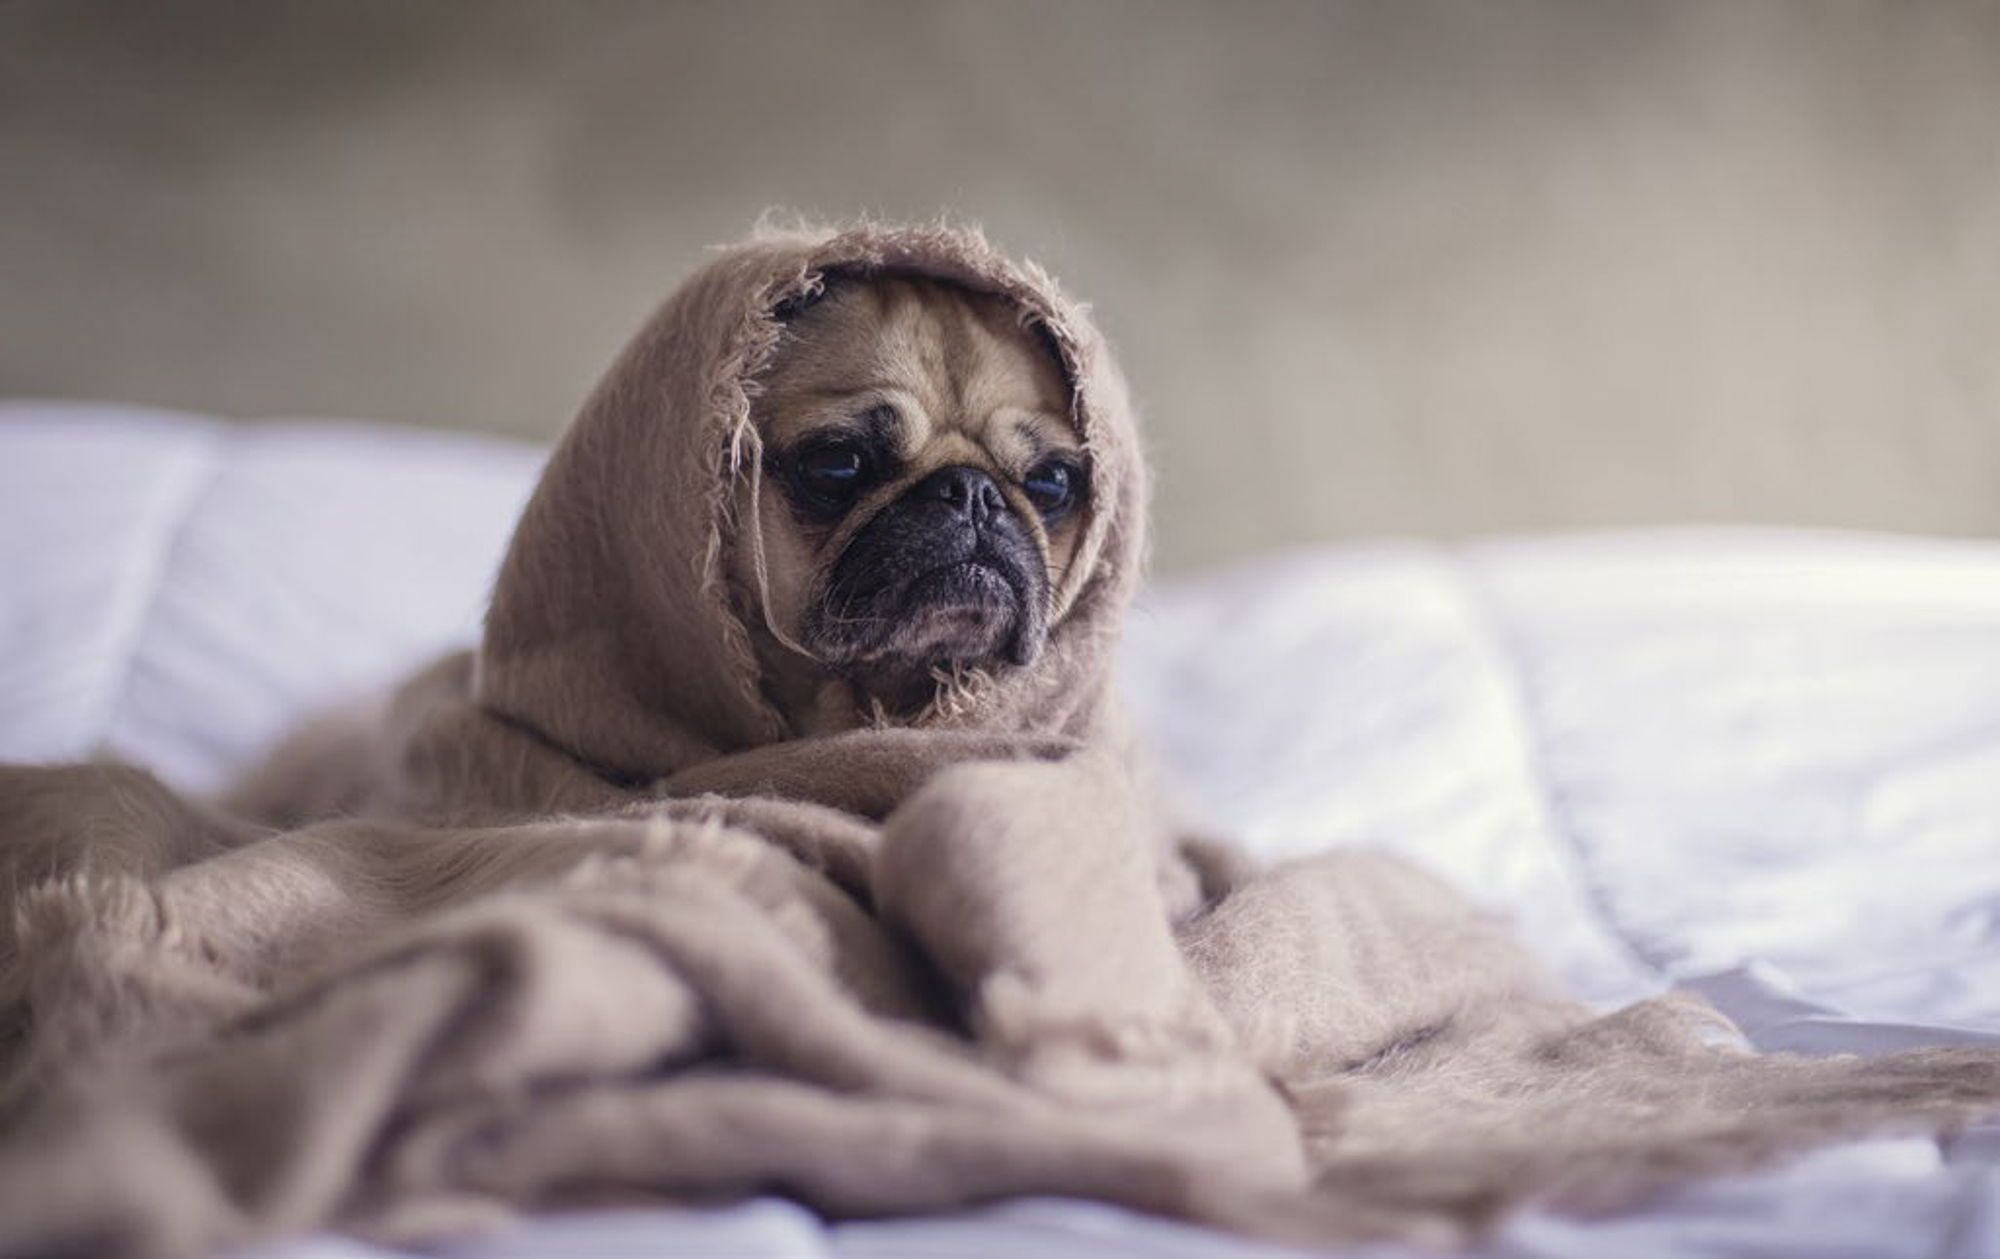 Winter Magazines Cozy Magazines The Dogs Pugs Cute Pugs